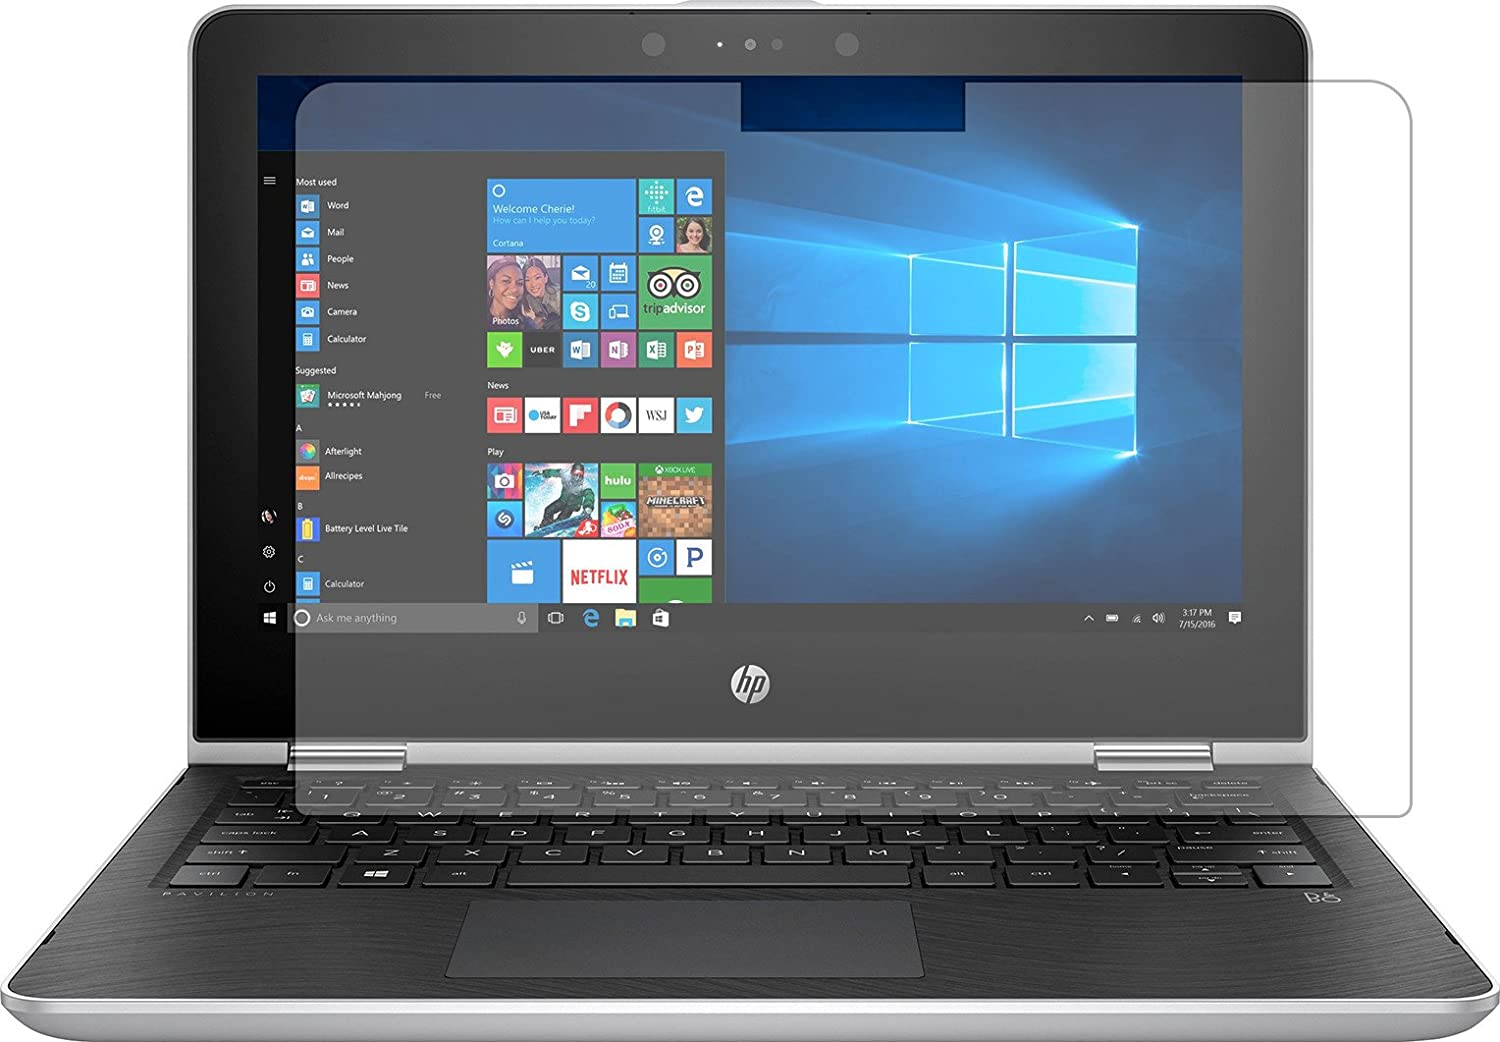 Hp Pavilion X360 2 In 1 11 6 Screen Protector High Clarity Anti Glare Computer Screen Protector Computer Screen Protector Computers Tablets Network Hardware